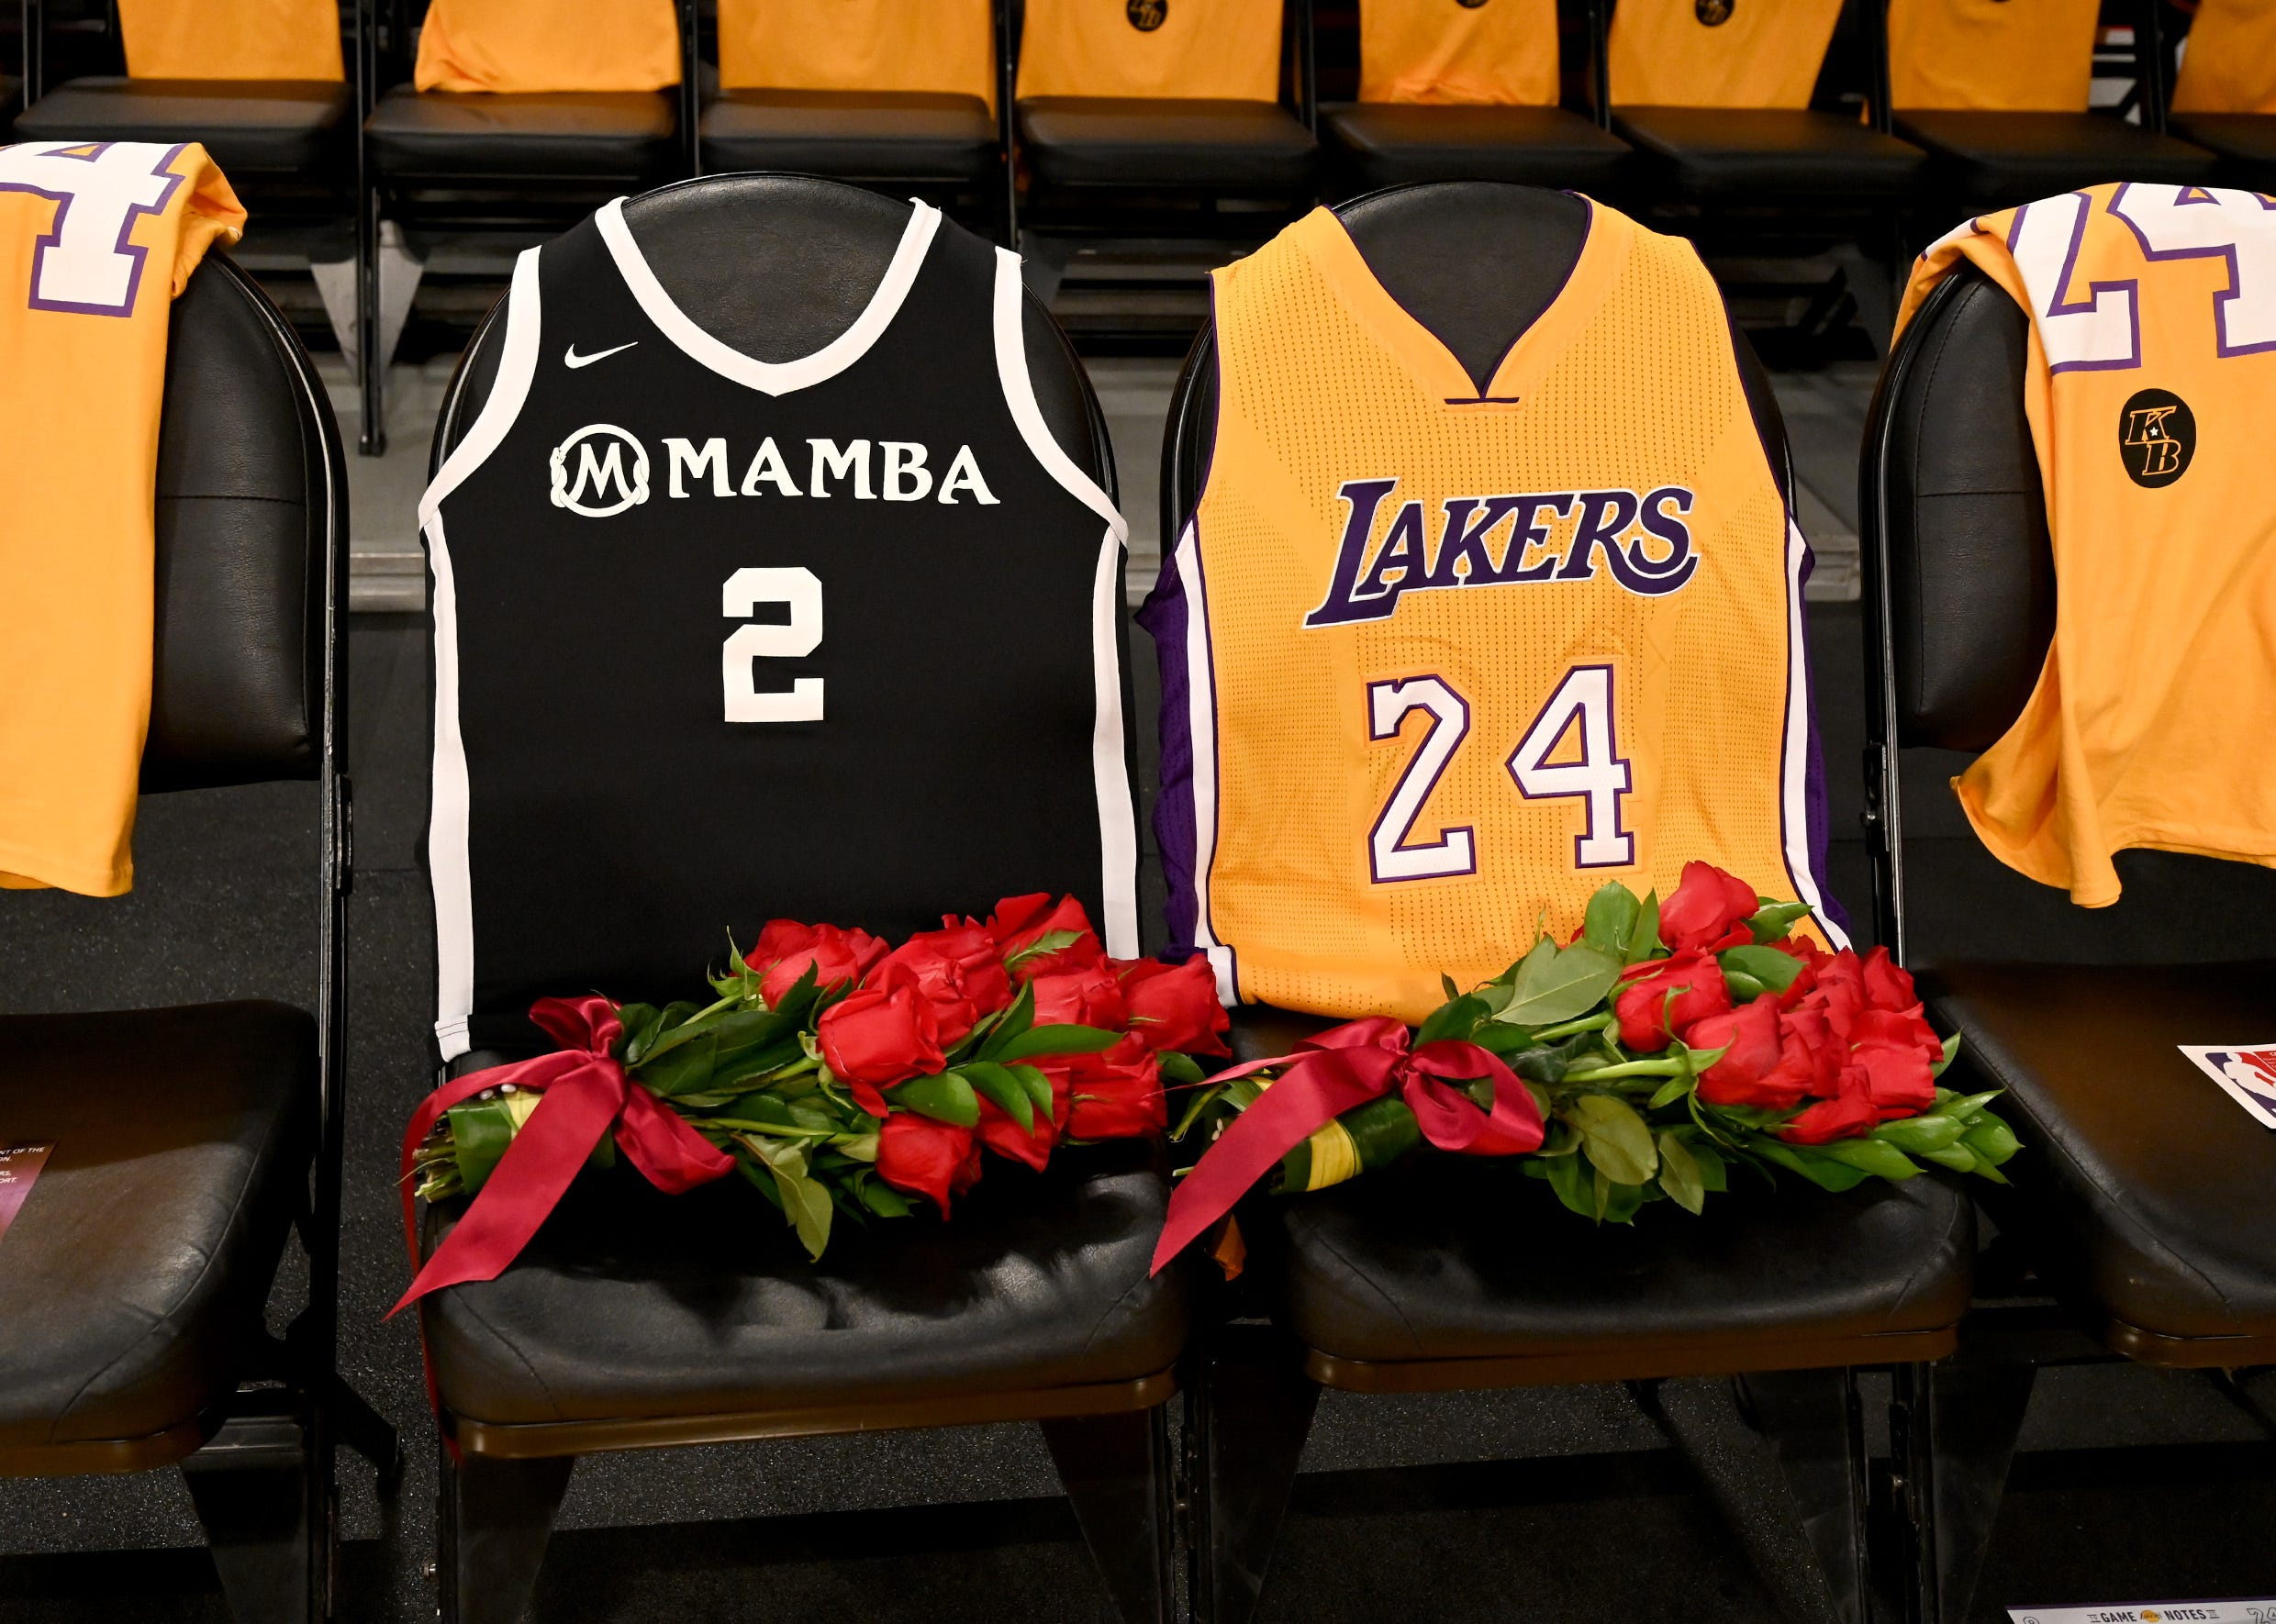 kobe bryant memorial tickets are now open for registration